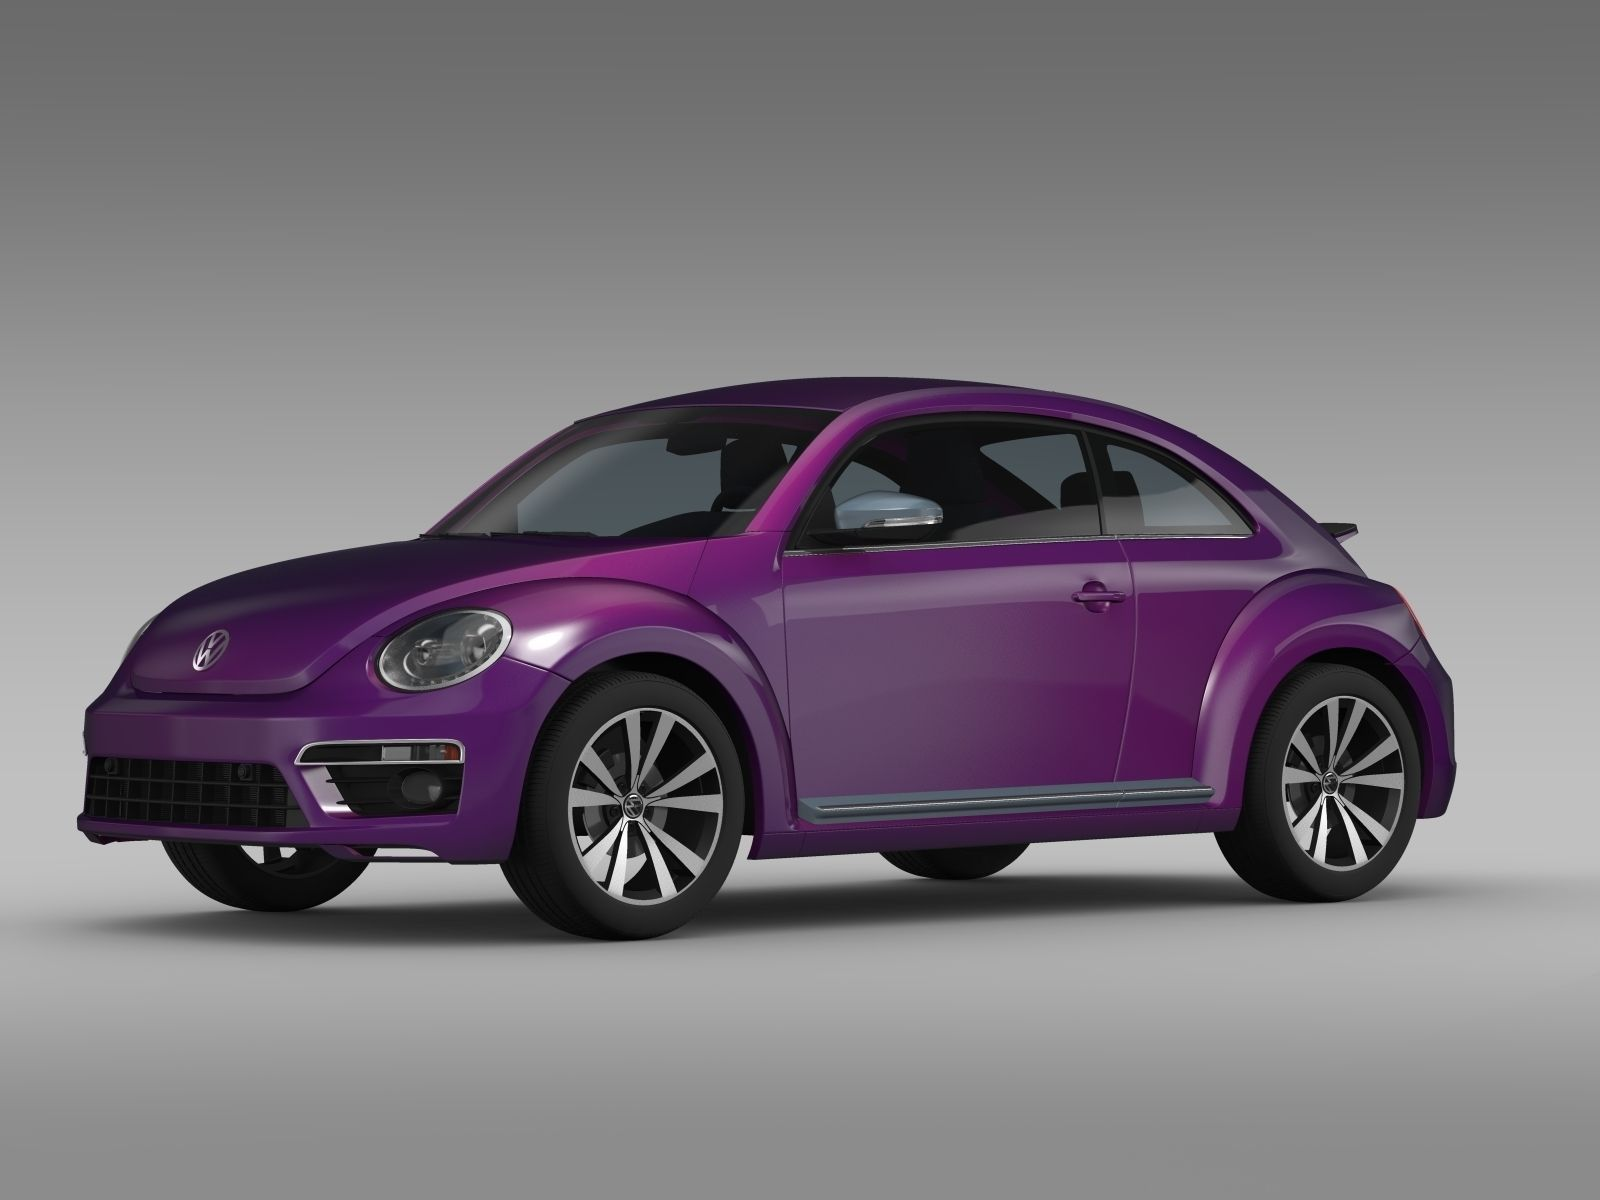 vw beetle pink edition concept 2015 3d model max obj. Black Bedroom Furniture Sets. Home Design Ideas